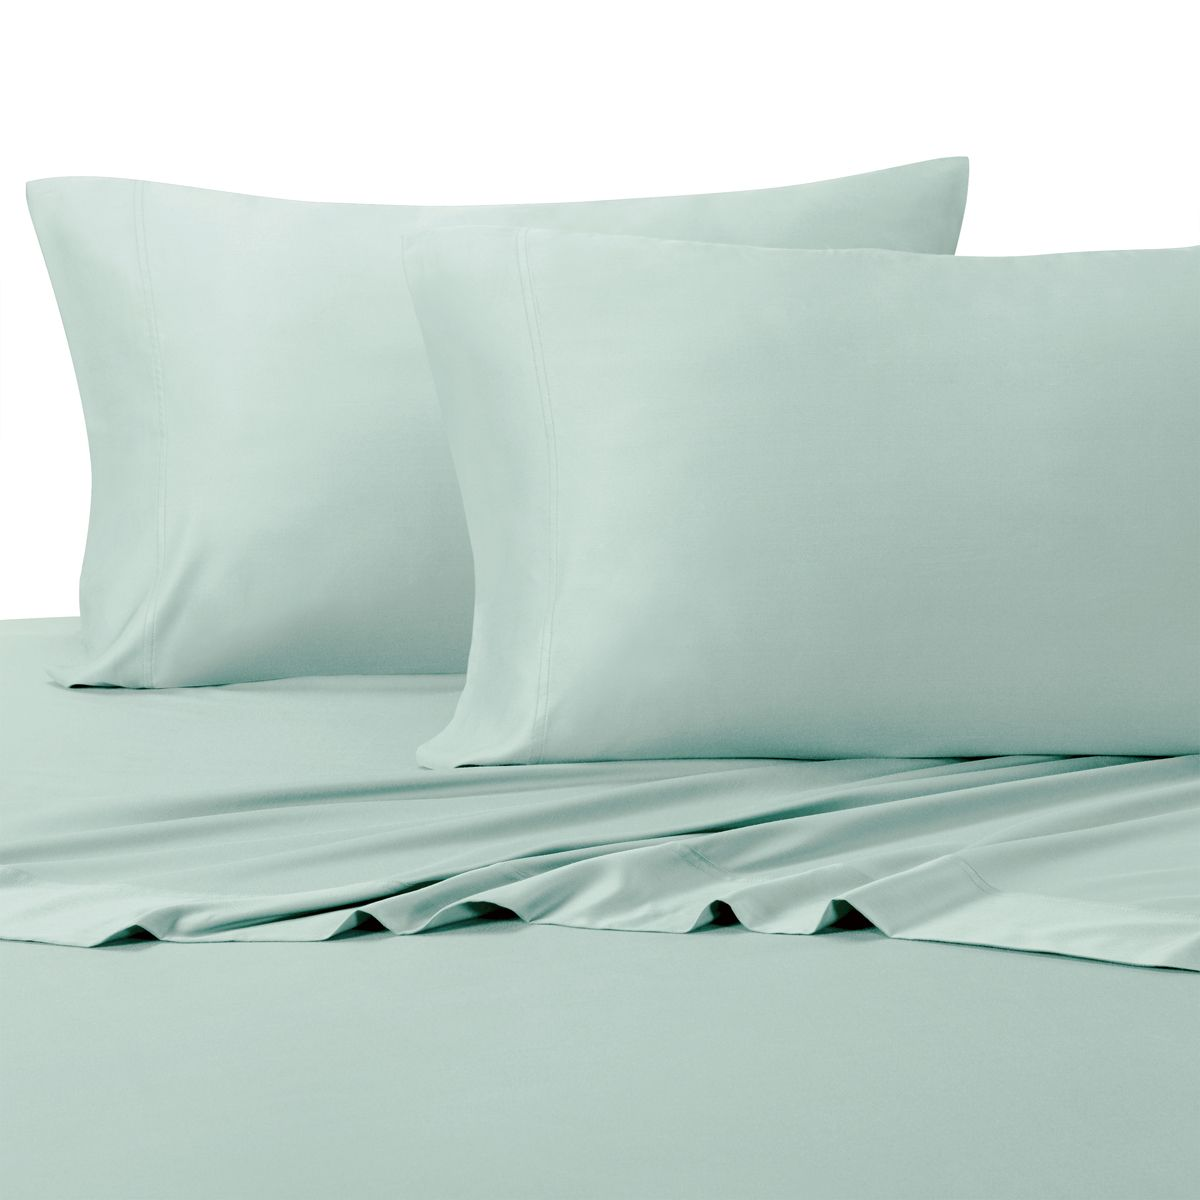 Bamboo Sheets 100 Viscose From Bamboo Bed Sheet Sets Soft Bed